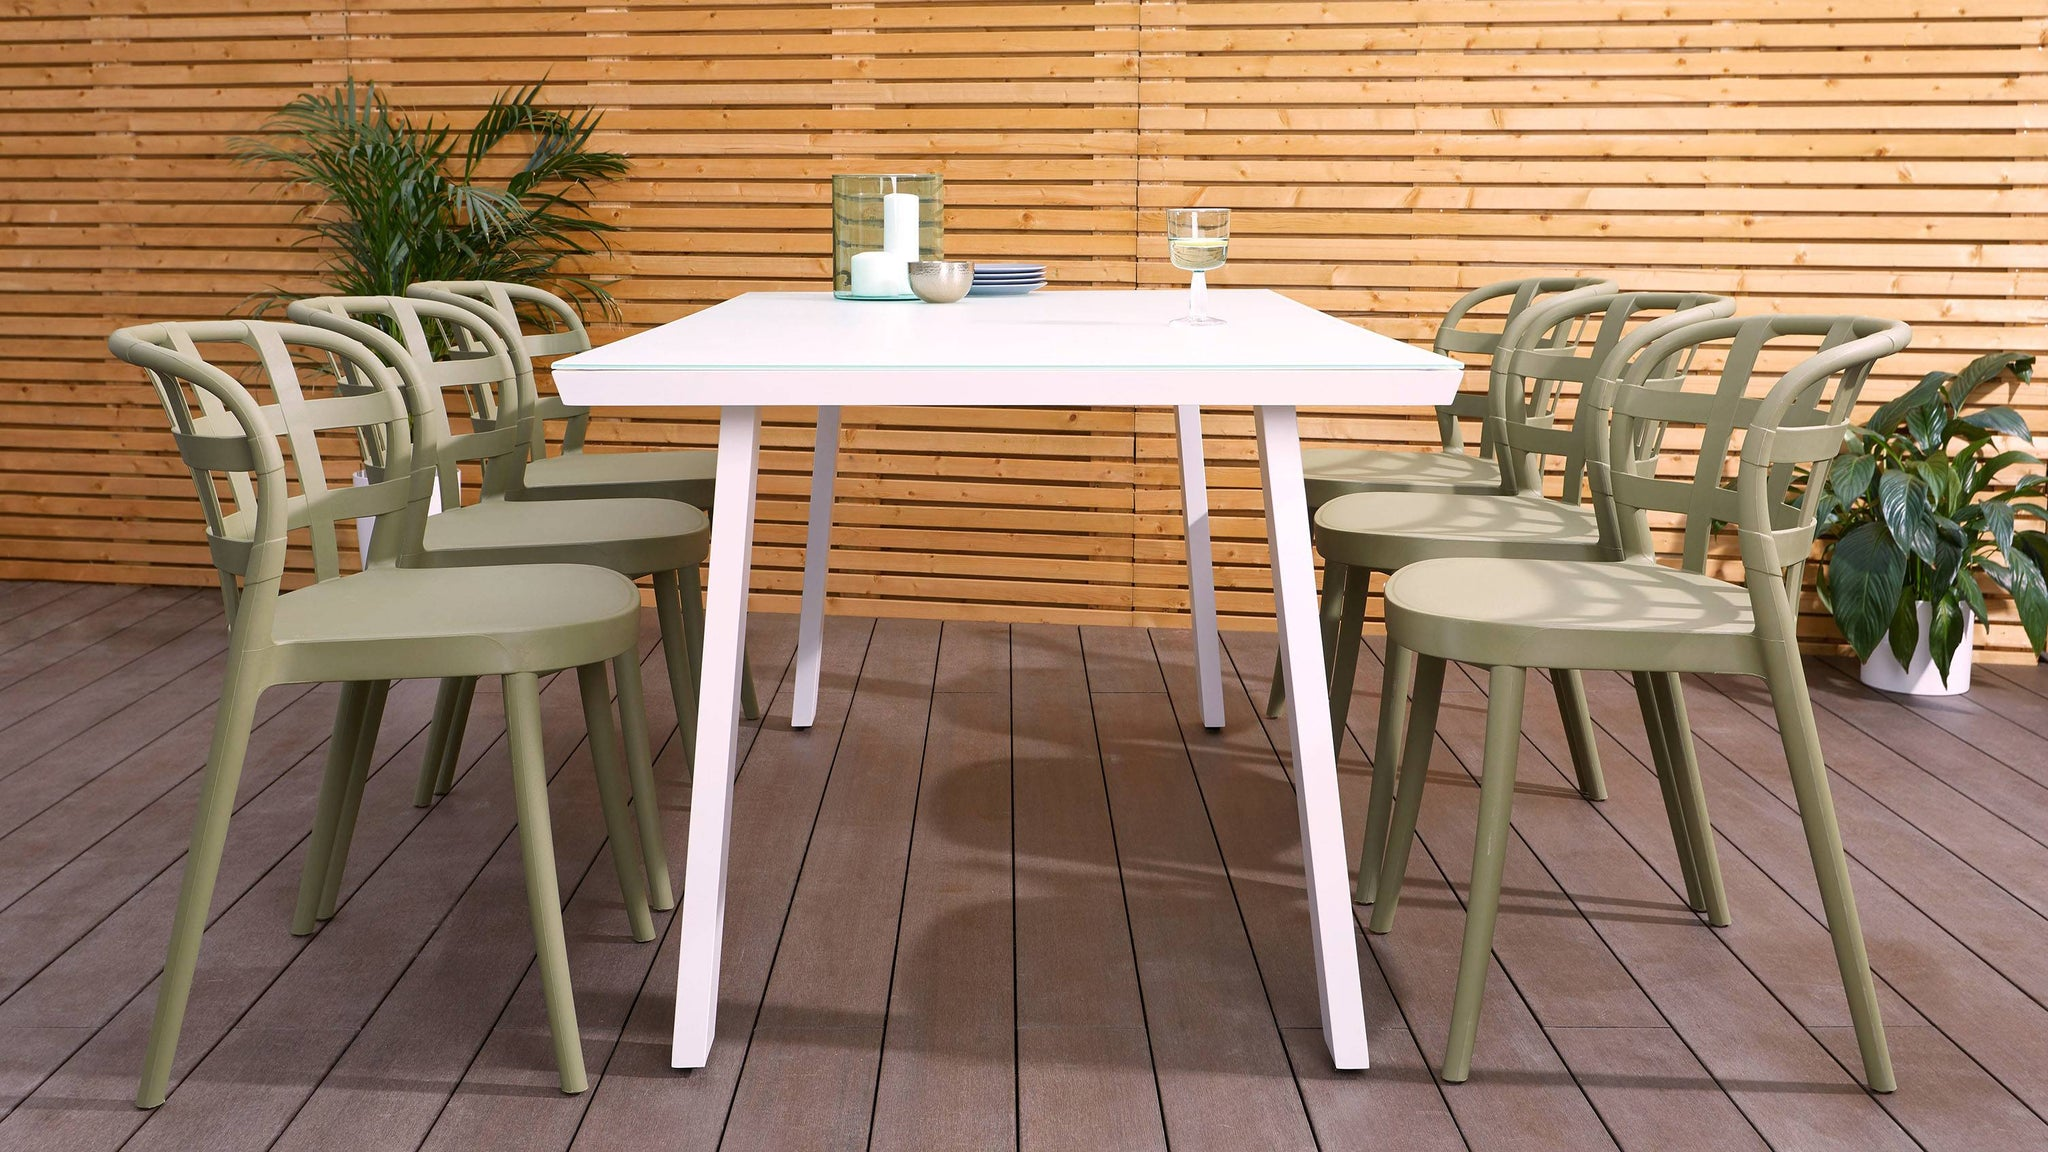 Modern 6-8 seater dining table set